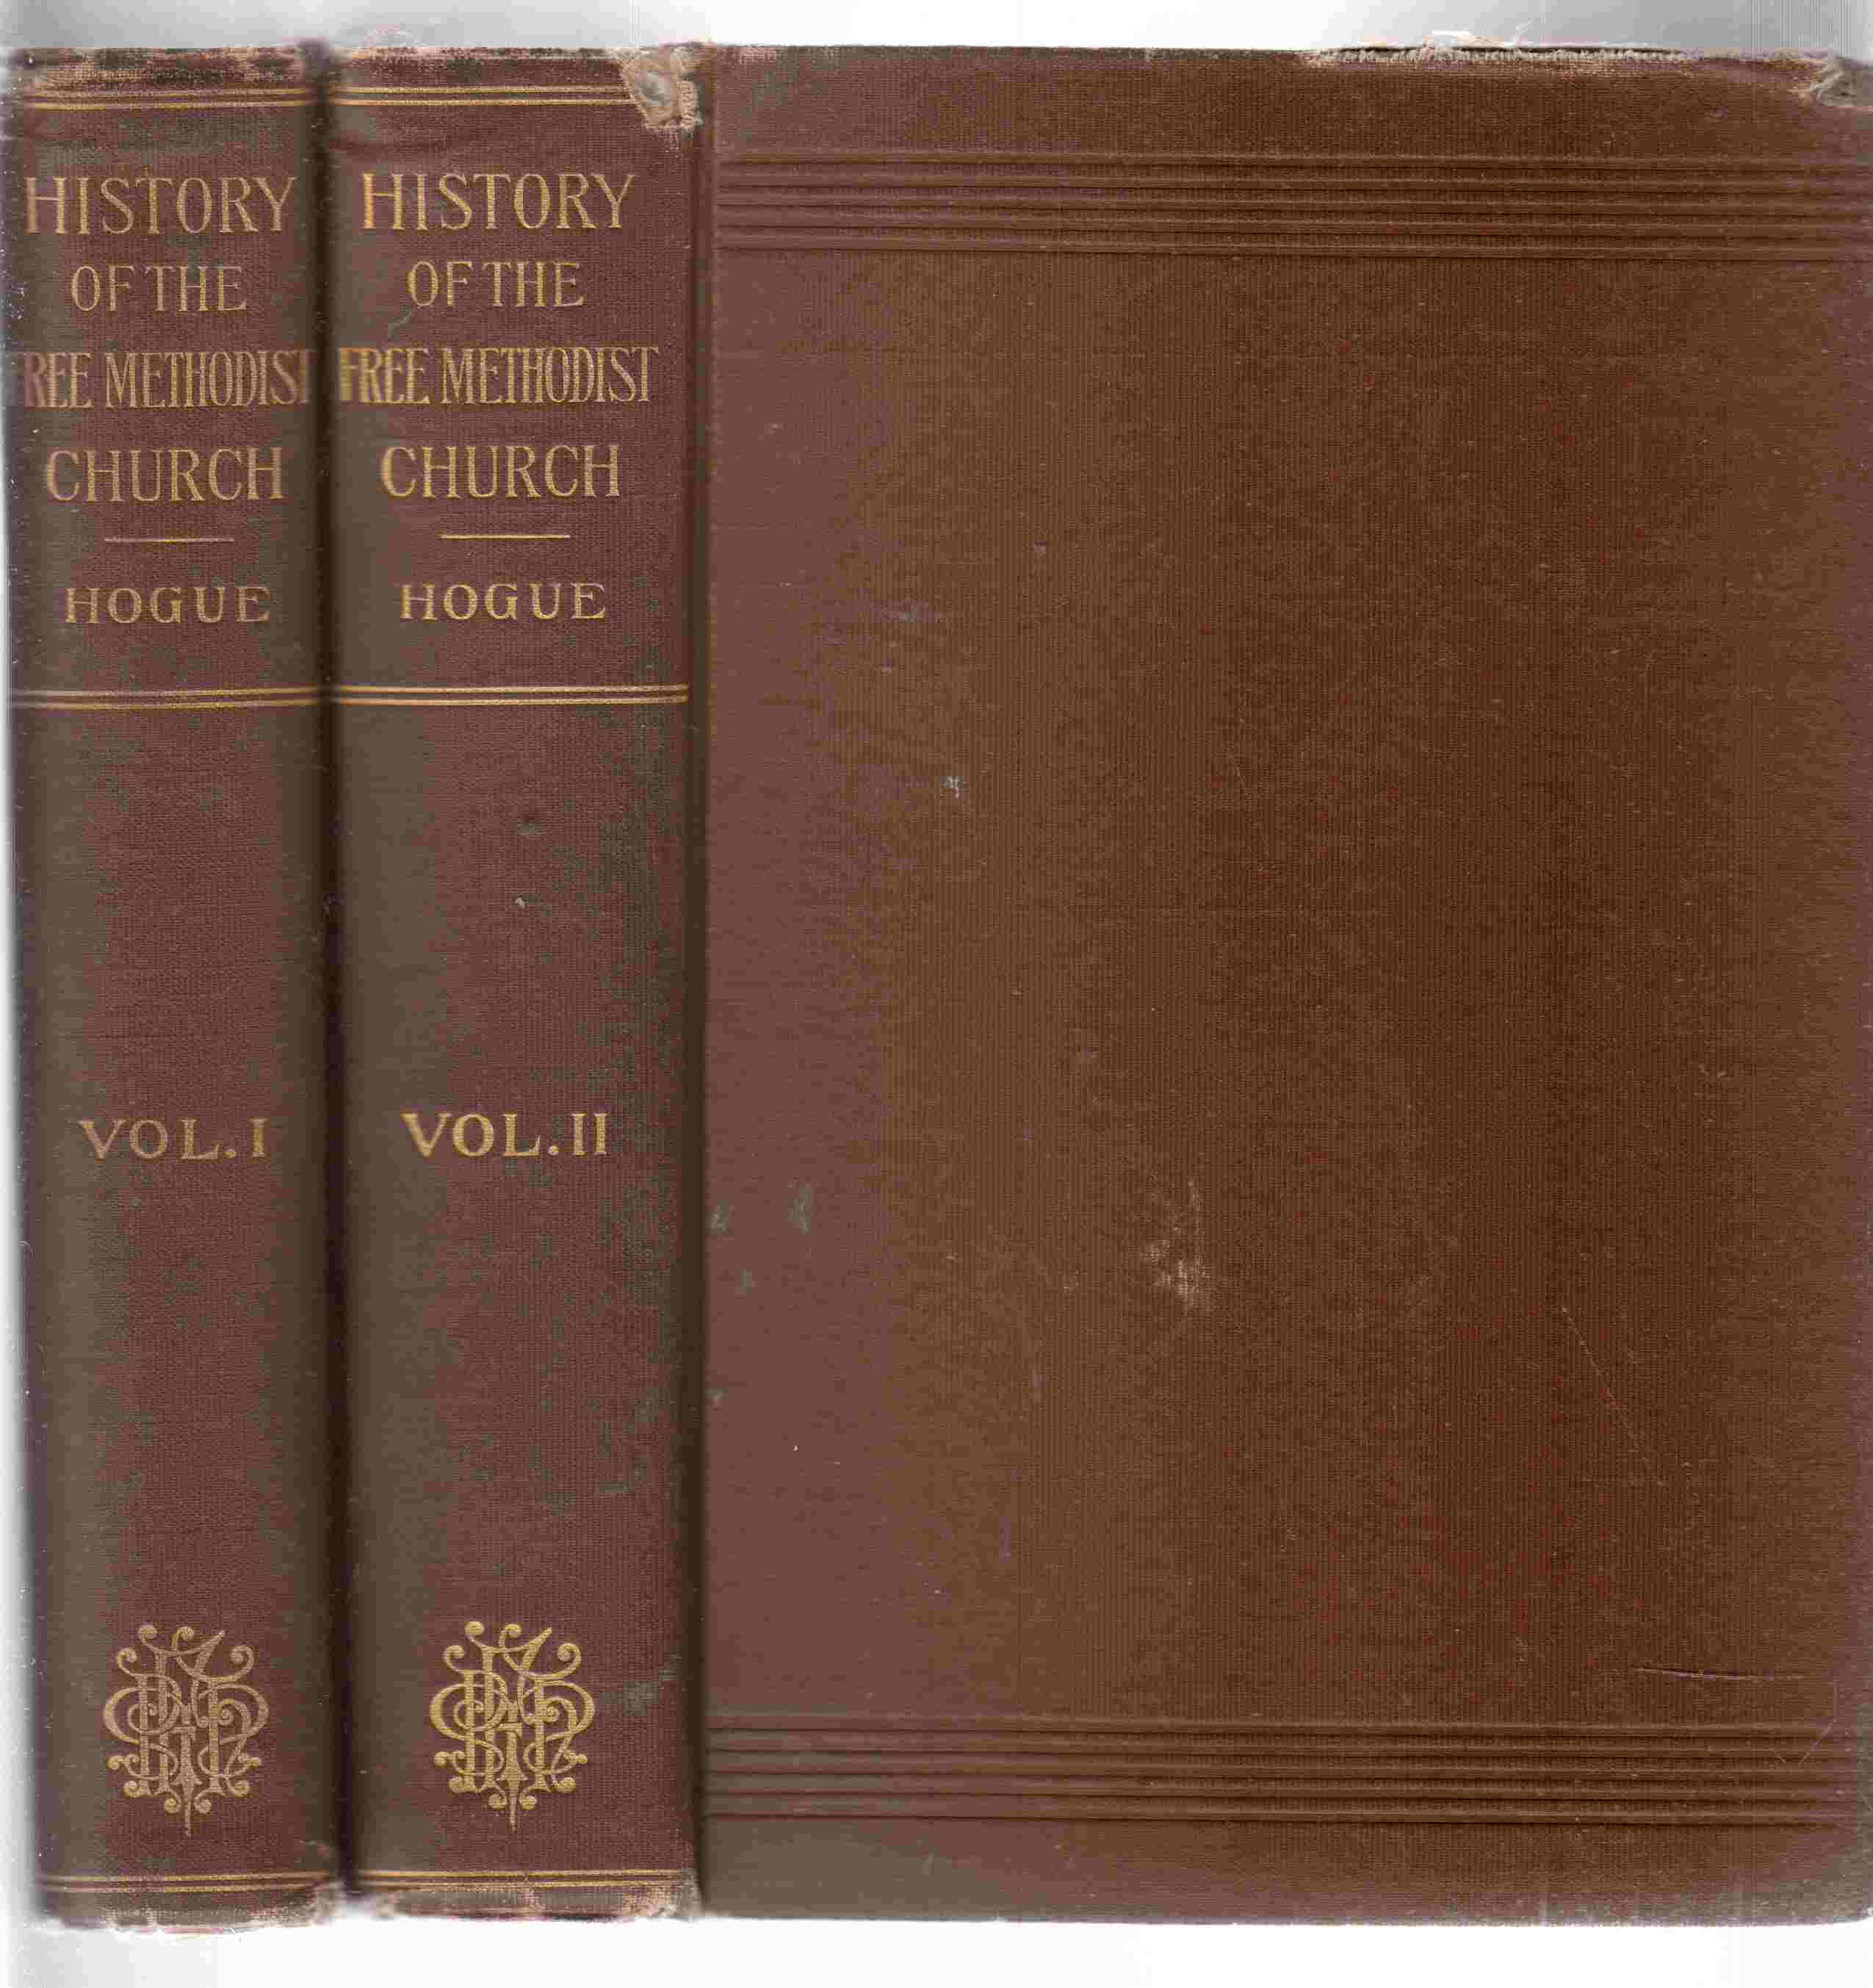 Image for History of the Free Methodist Church of North America (2 Volume Set)